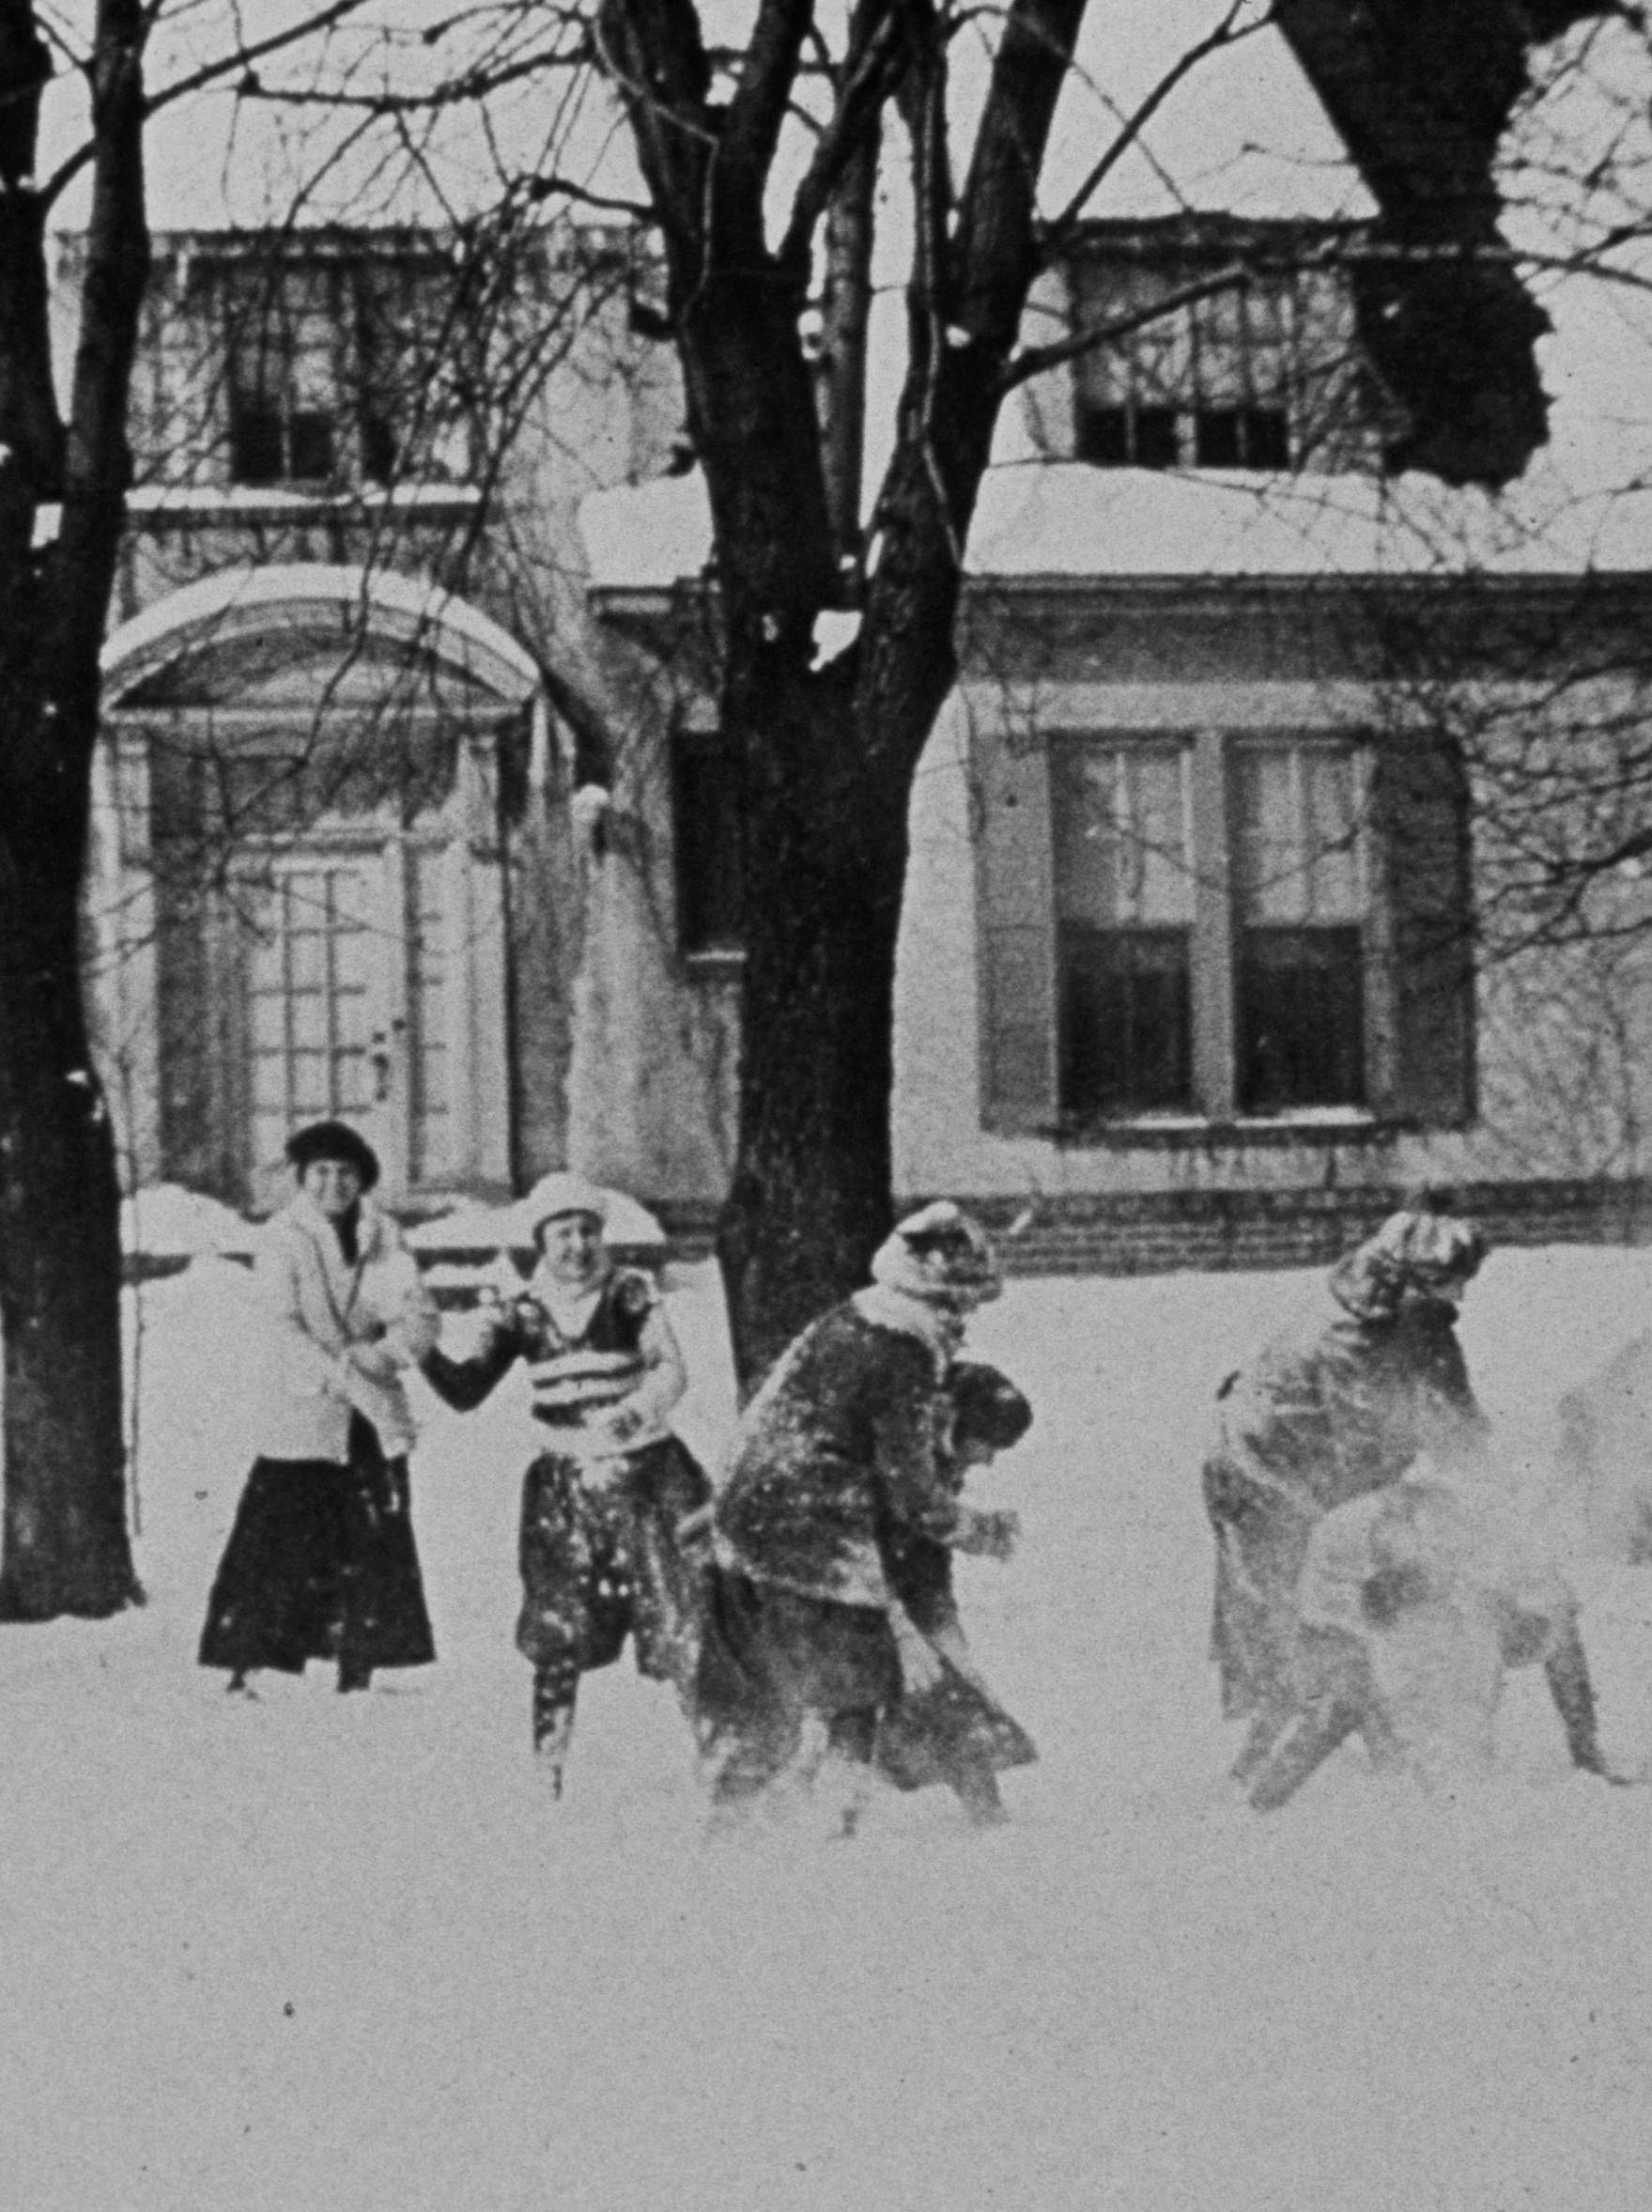 Snowball fight Page & Belt campus, c. 1915